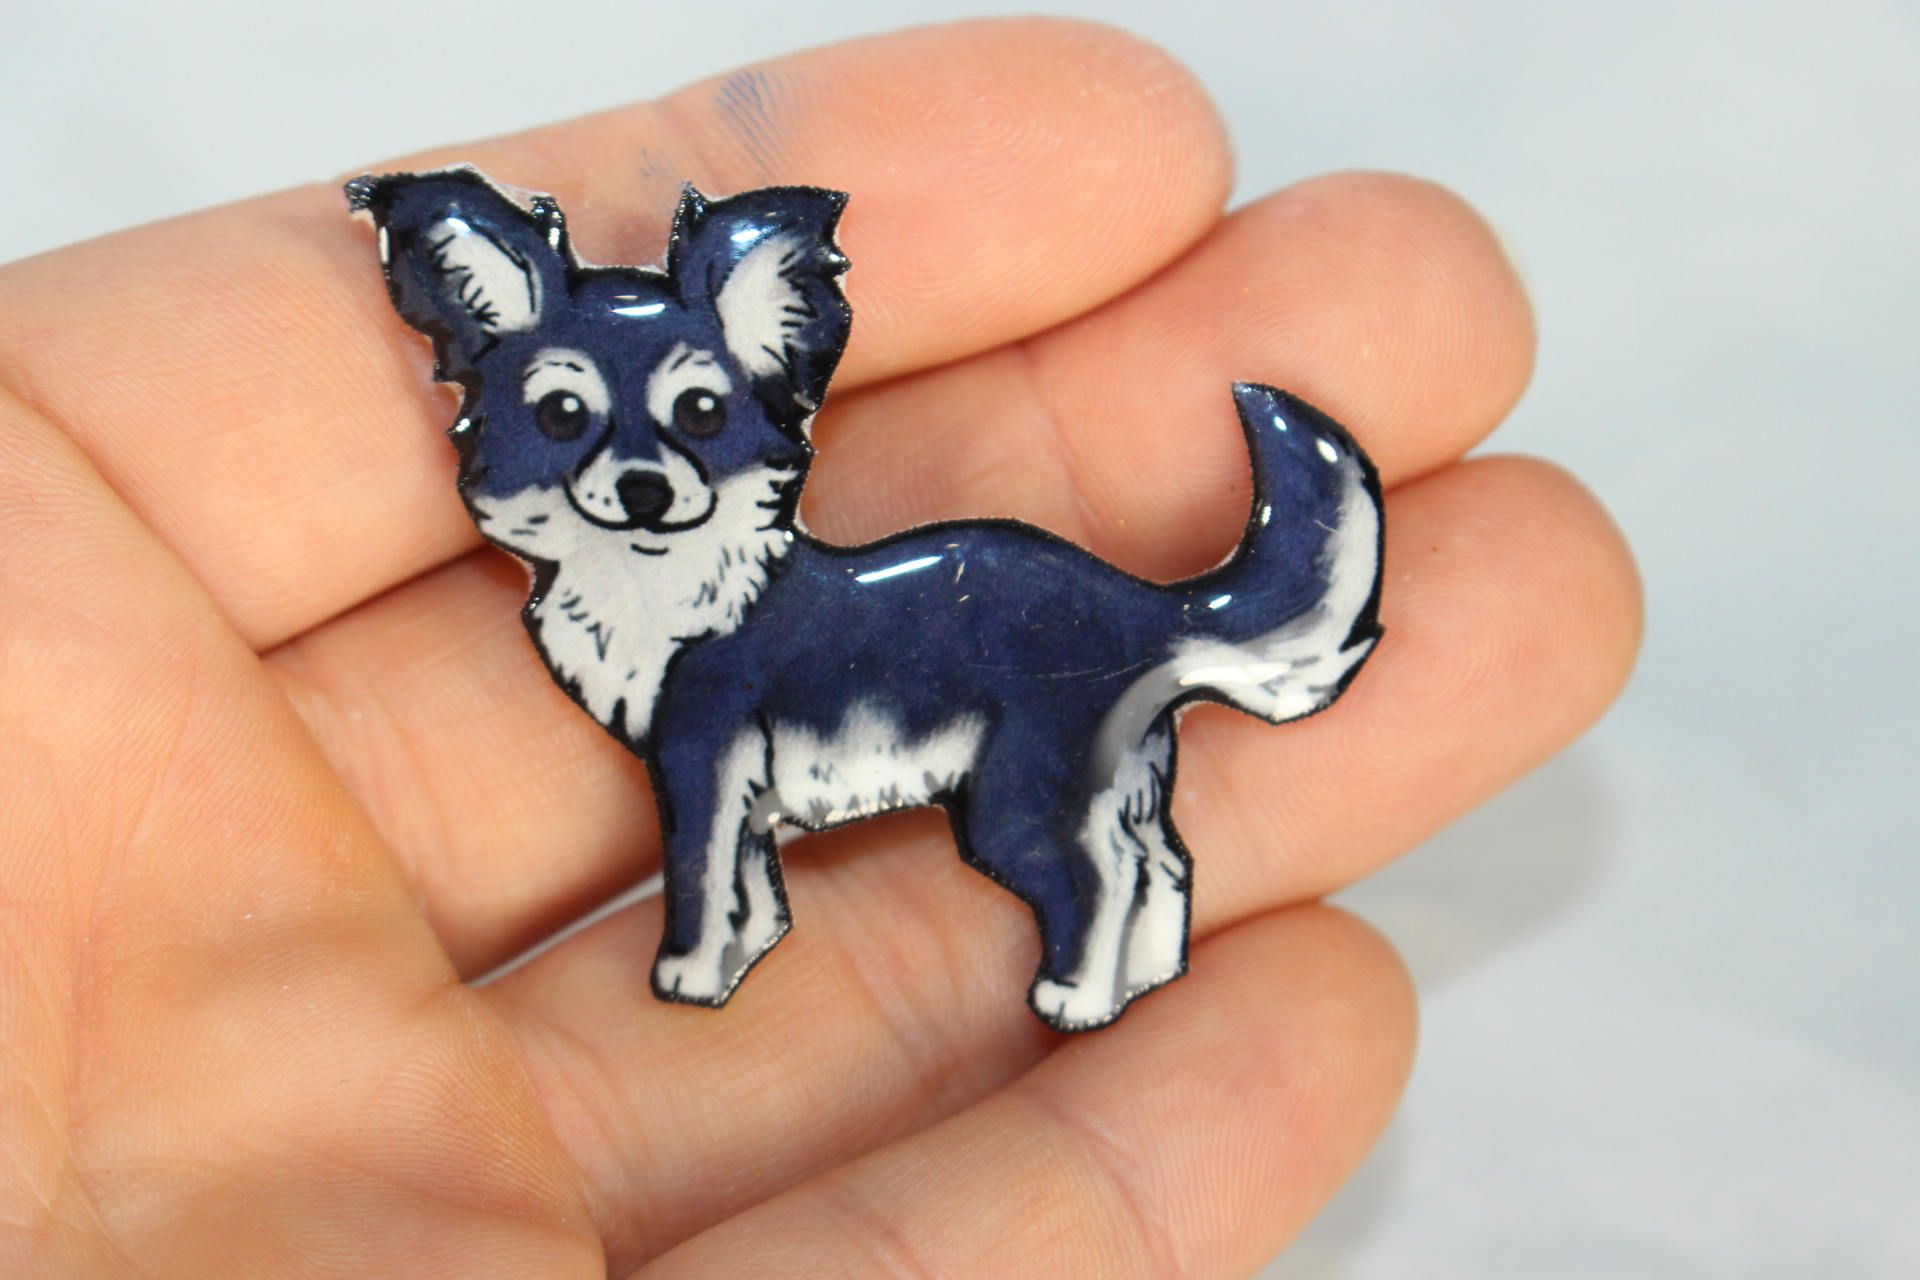 Chihuahua chiwawa gift for chihuahua lovers or